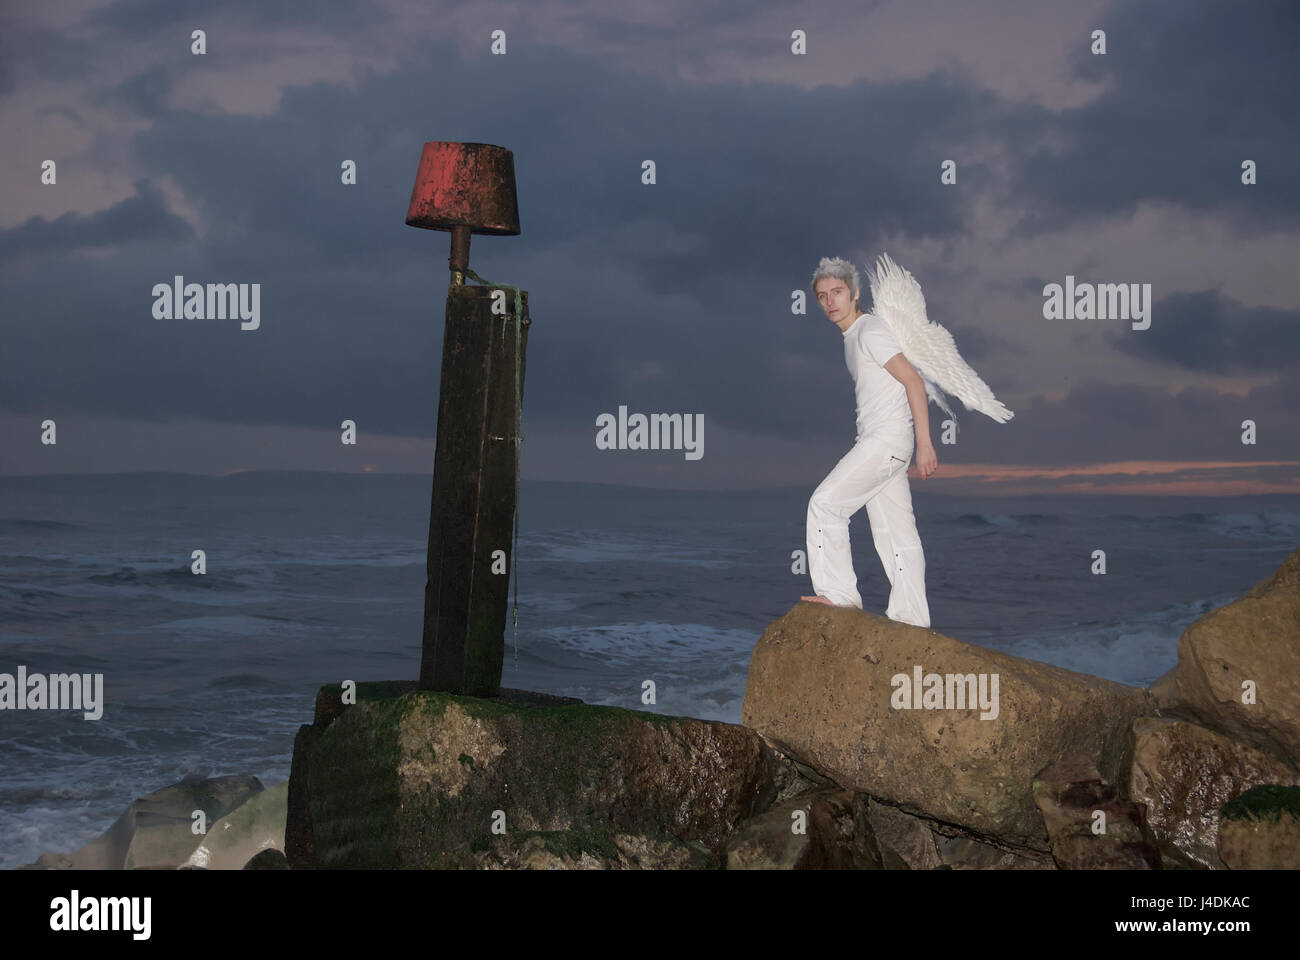 Young man dressed in white with angel wings on the rocks by the sea in stormy weather - Stock Image